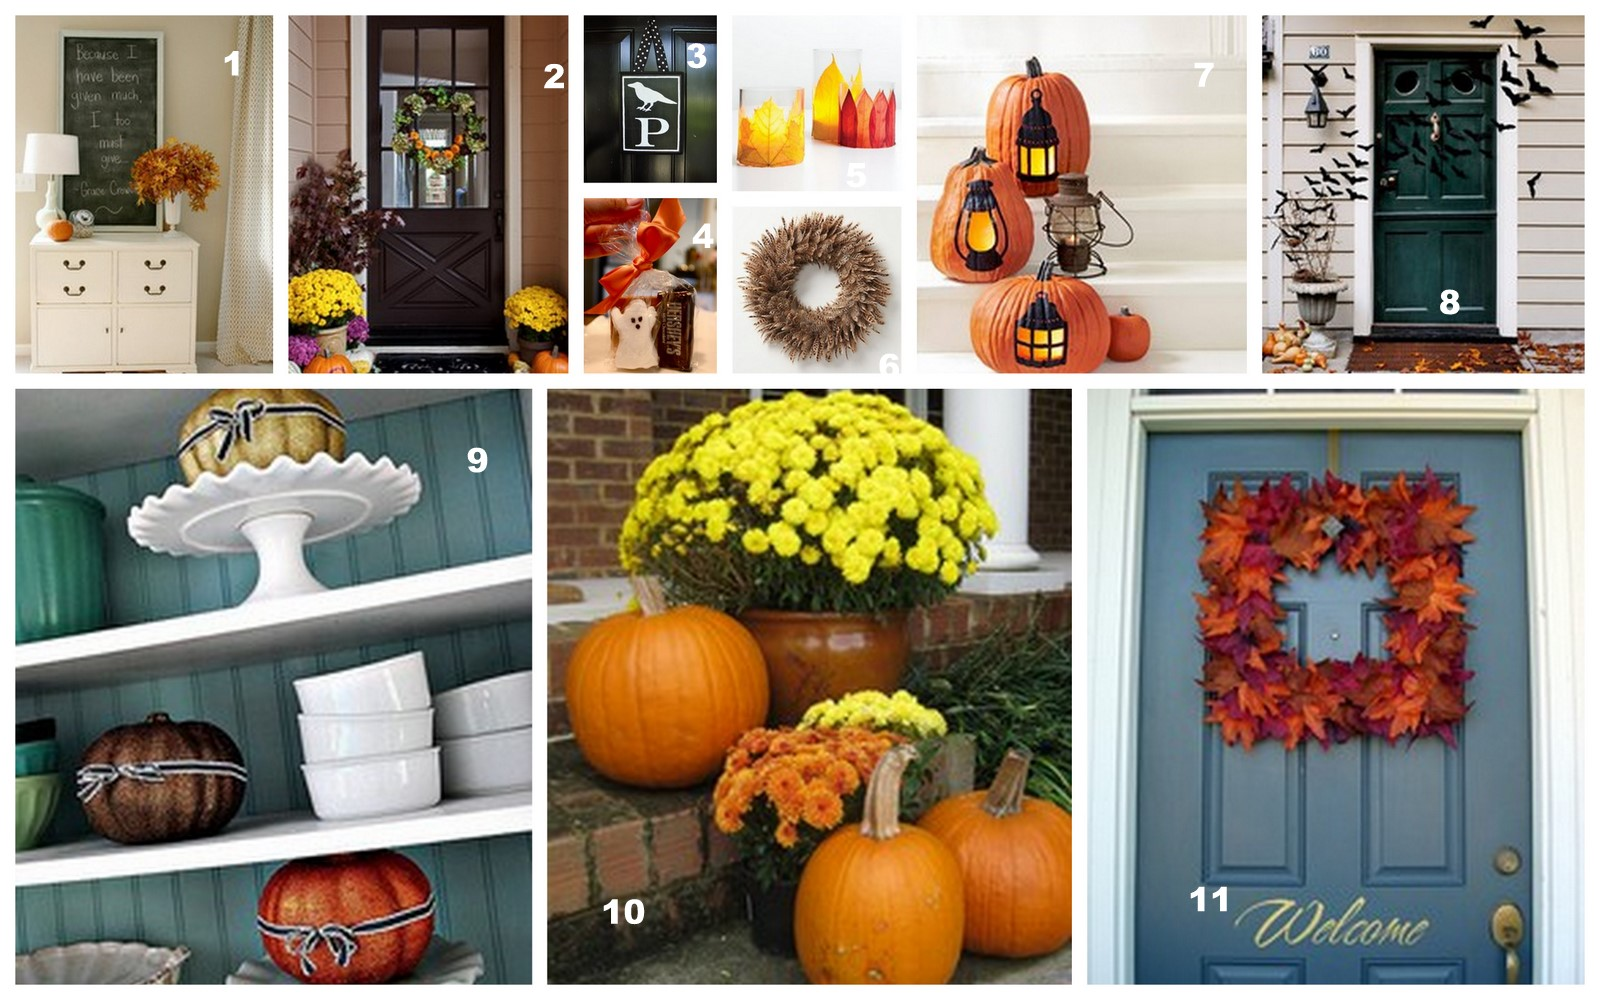 Home made modern pinterest easy fall decorating ideas Home decor ideas bedroom pinterest